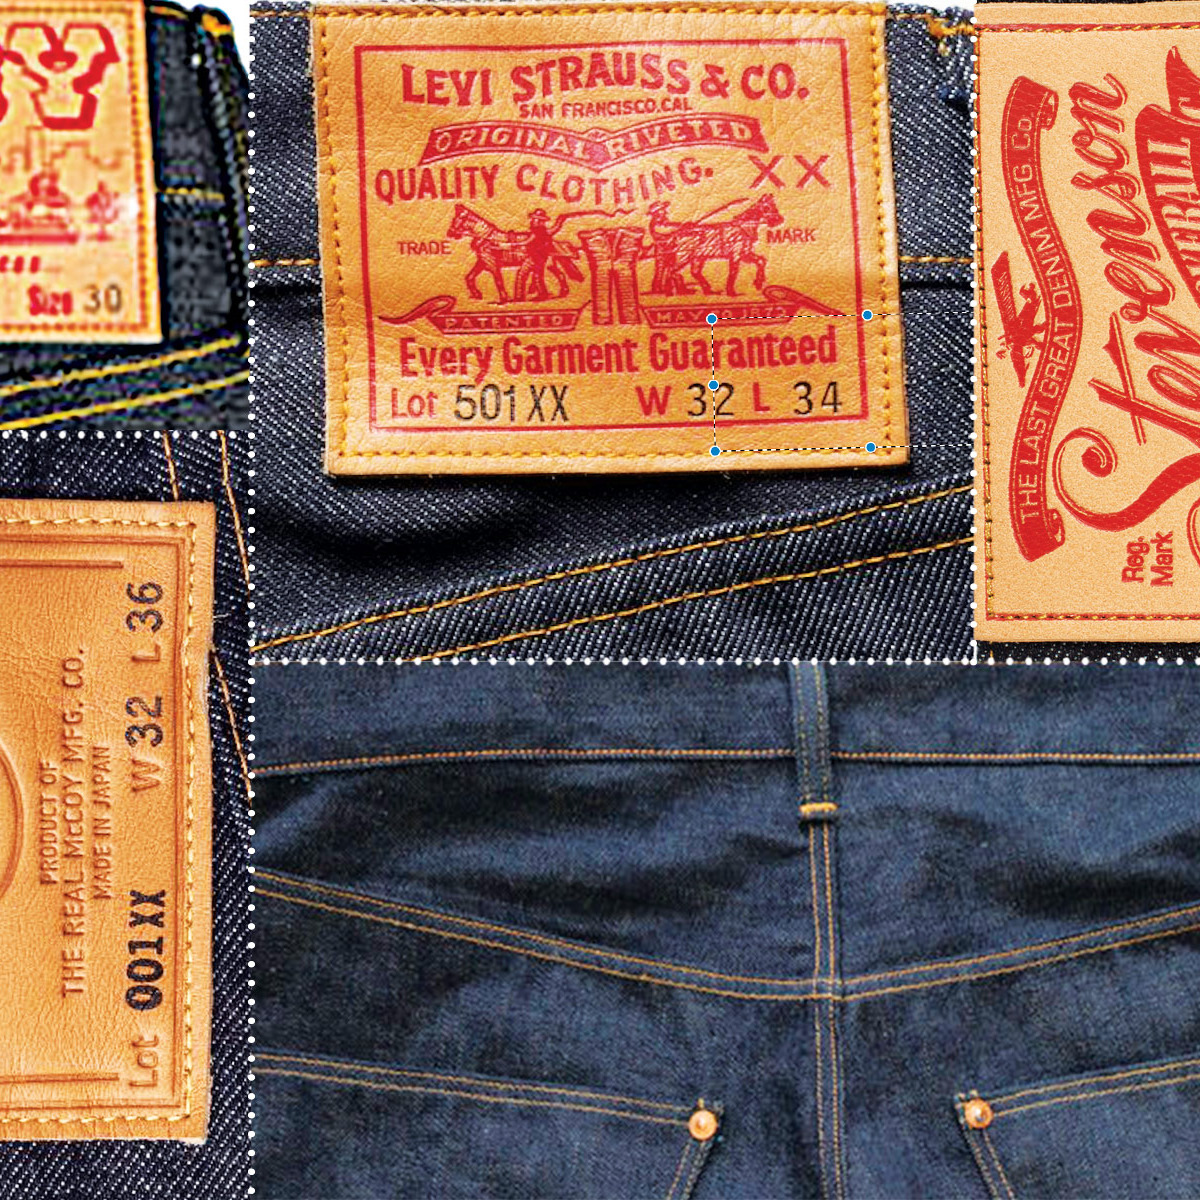 459c91dd0b9 So You've Graduated From A.P.C. Raw Denim. Here's What to Buy Next.